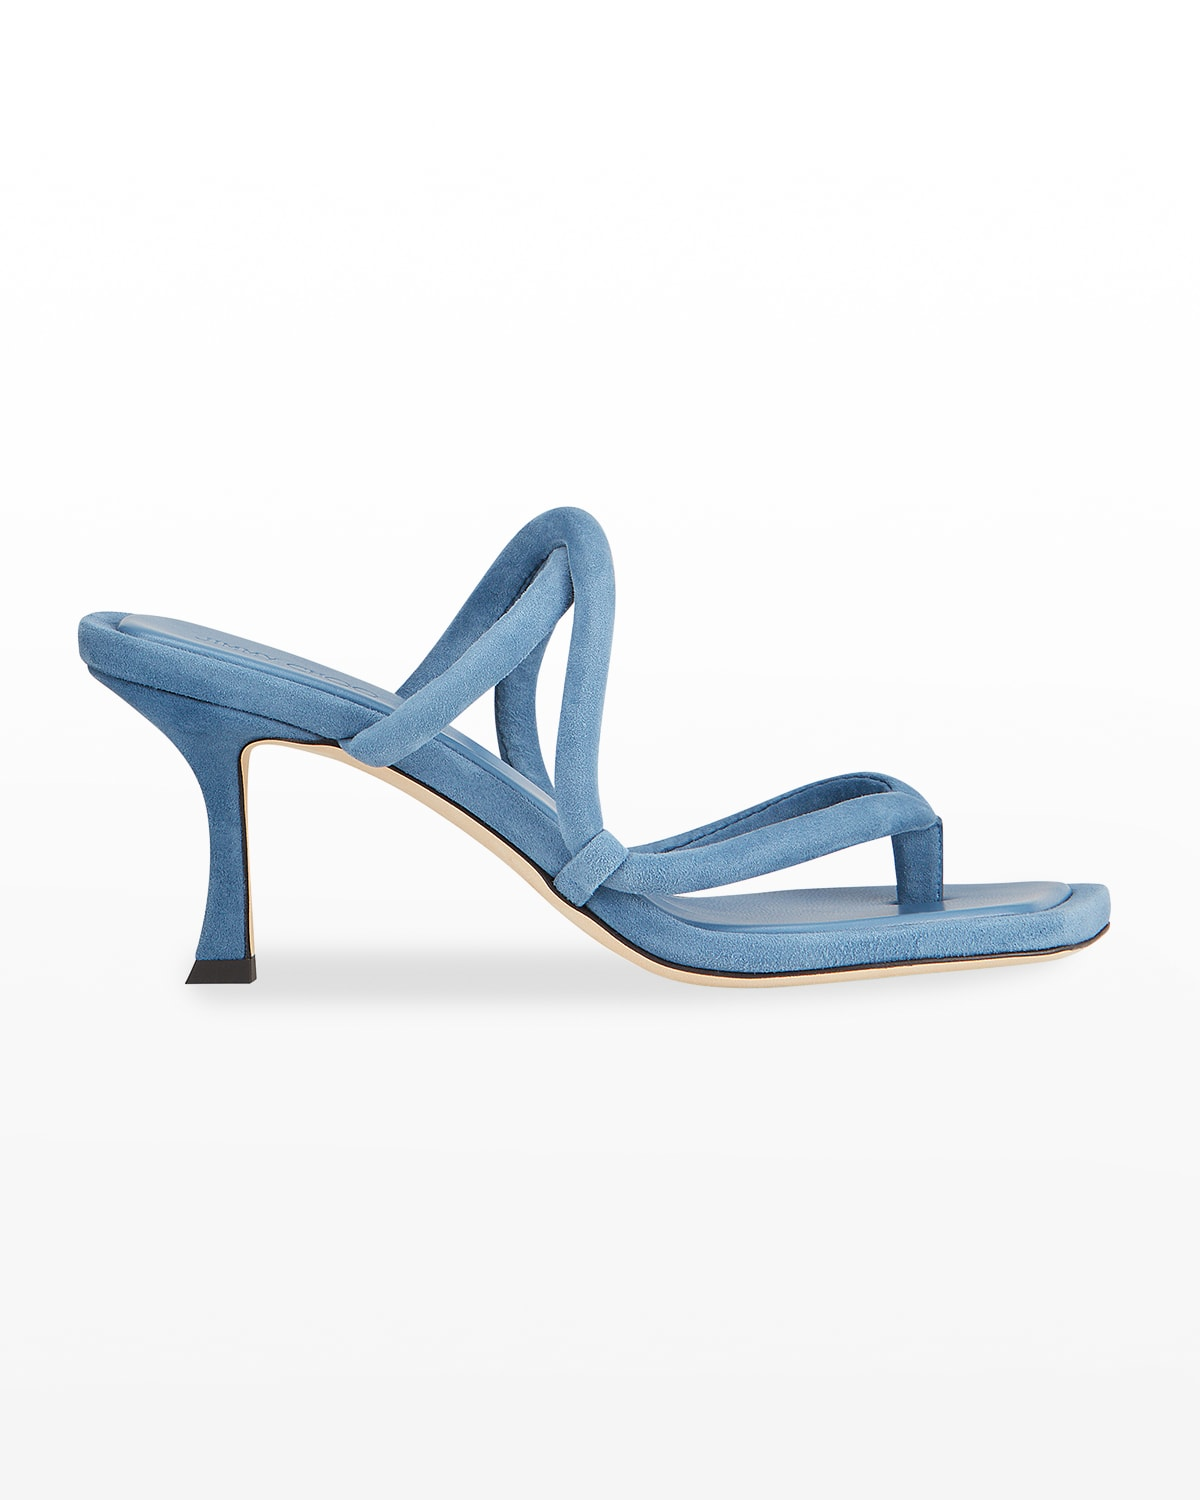 Cape Suede Strappy Slide Sandals